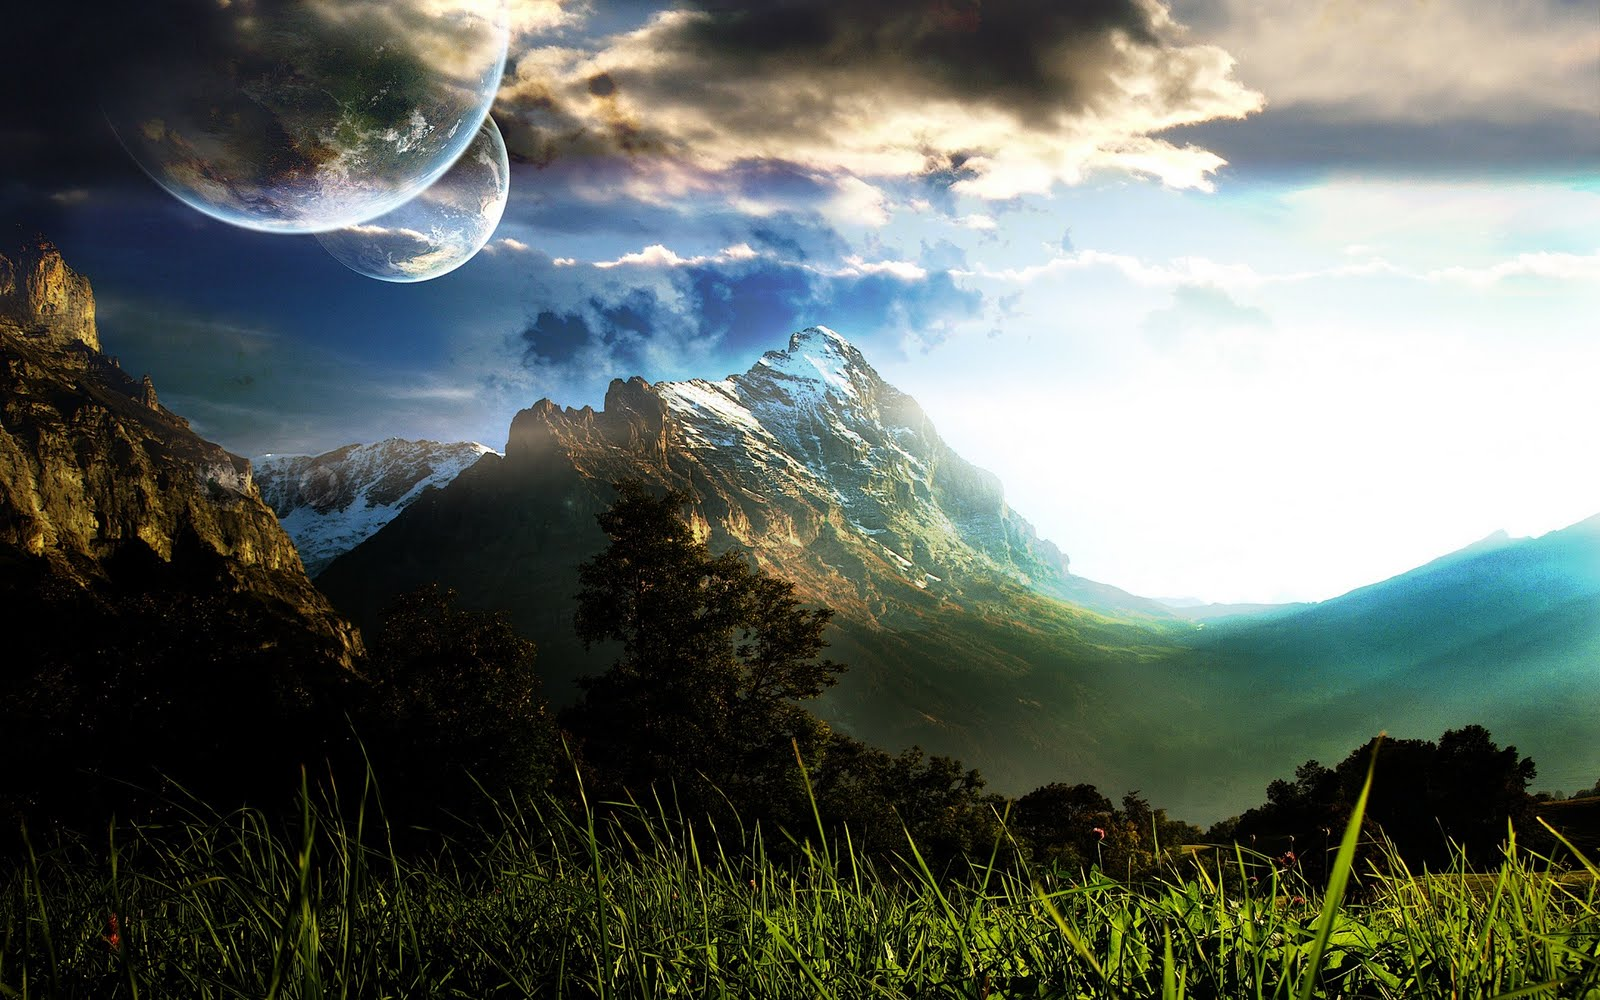 Most Amazing Full Hd Wallpapers Backgrounds Ever